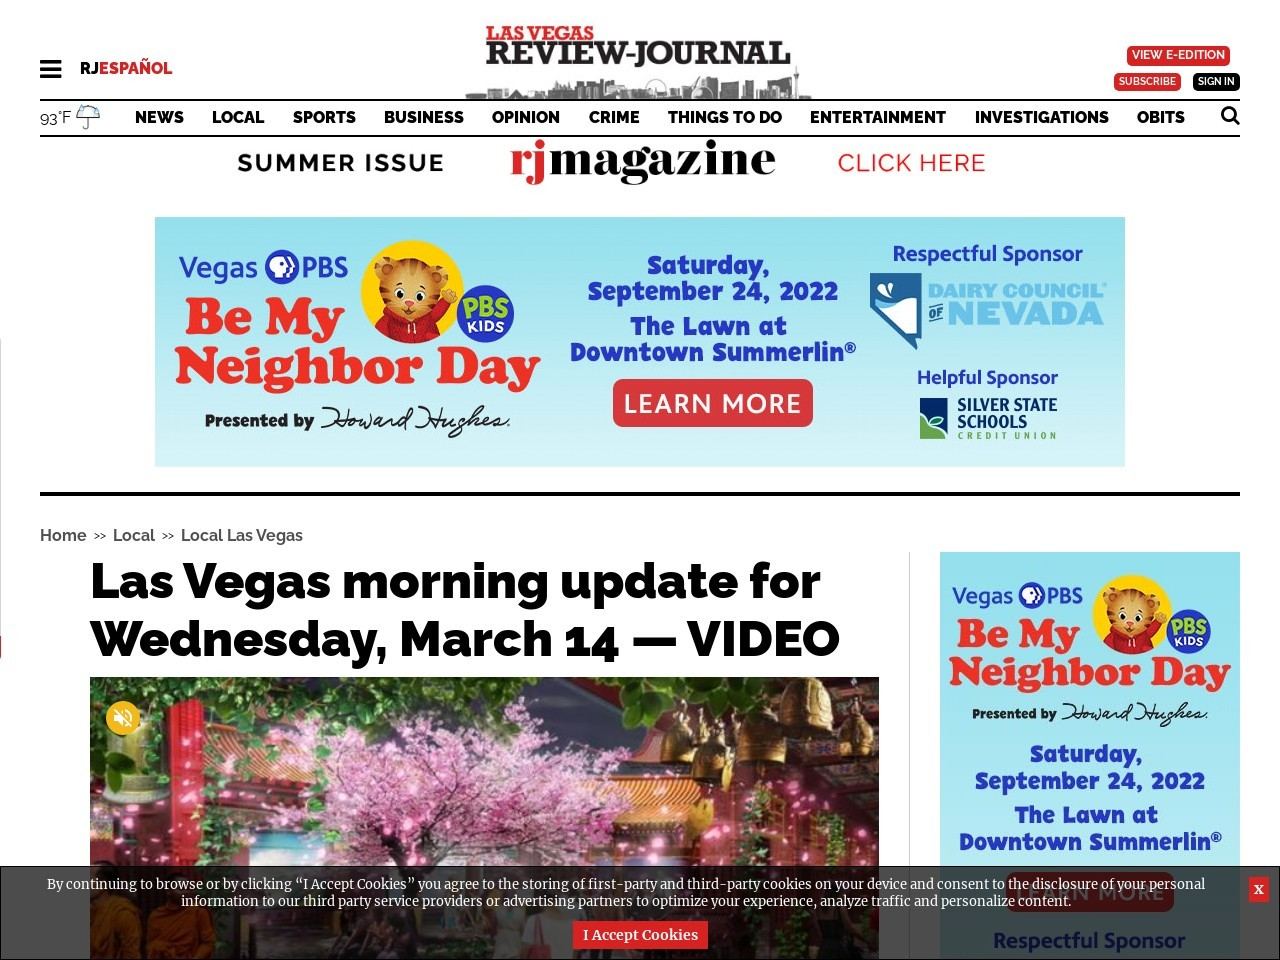 Las Vegas morning update for Wednesday, March 14 — VIDEO